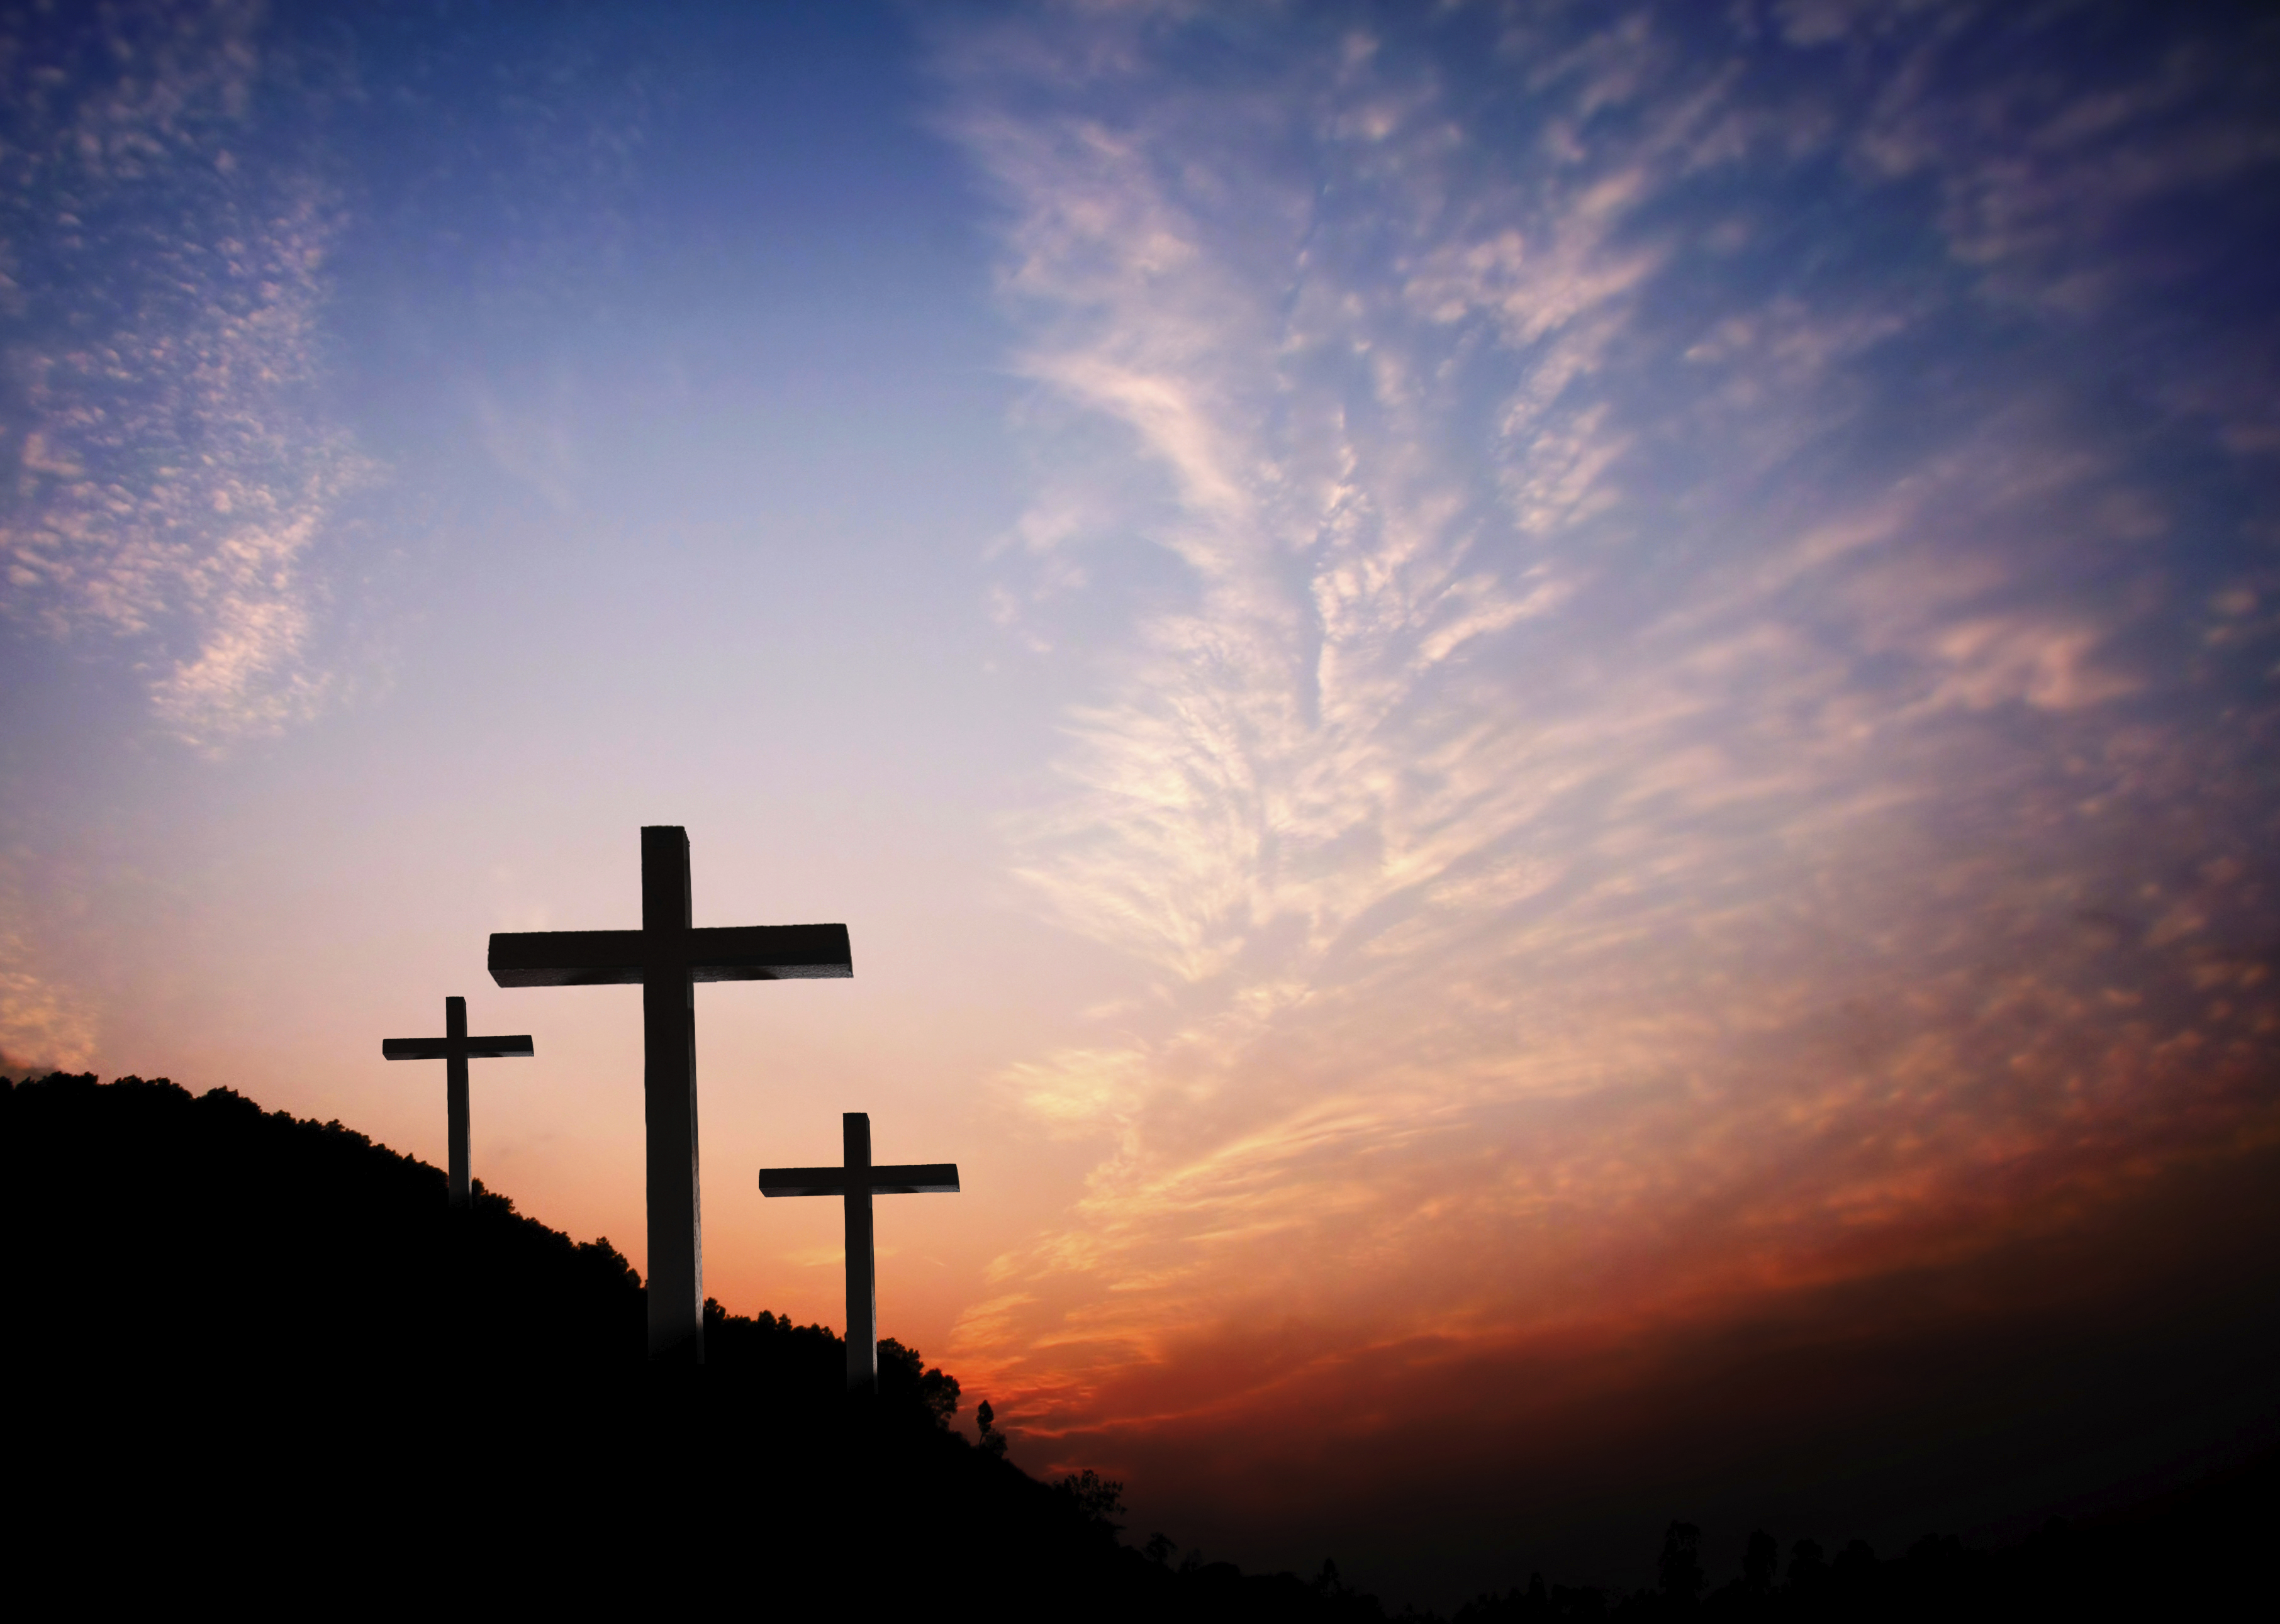 Good Friday Wallpapers Images Photos Pictures Backgrounds | 3624 x 2582 jpeg 5444kB